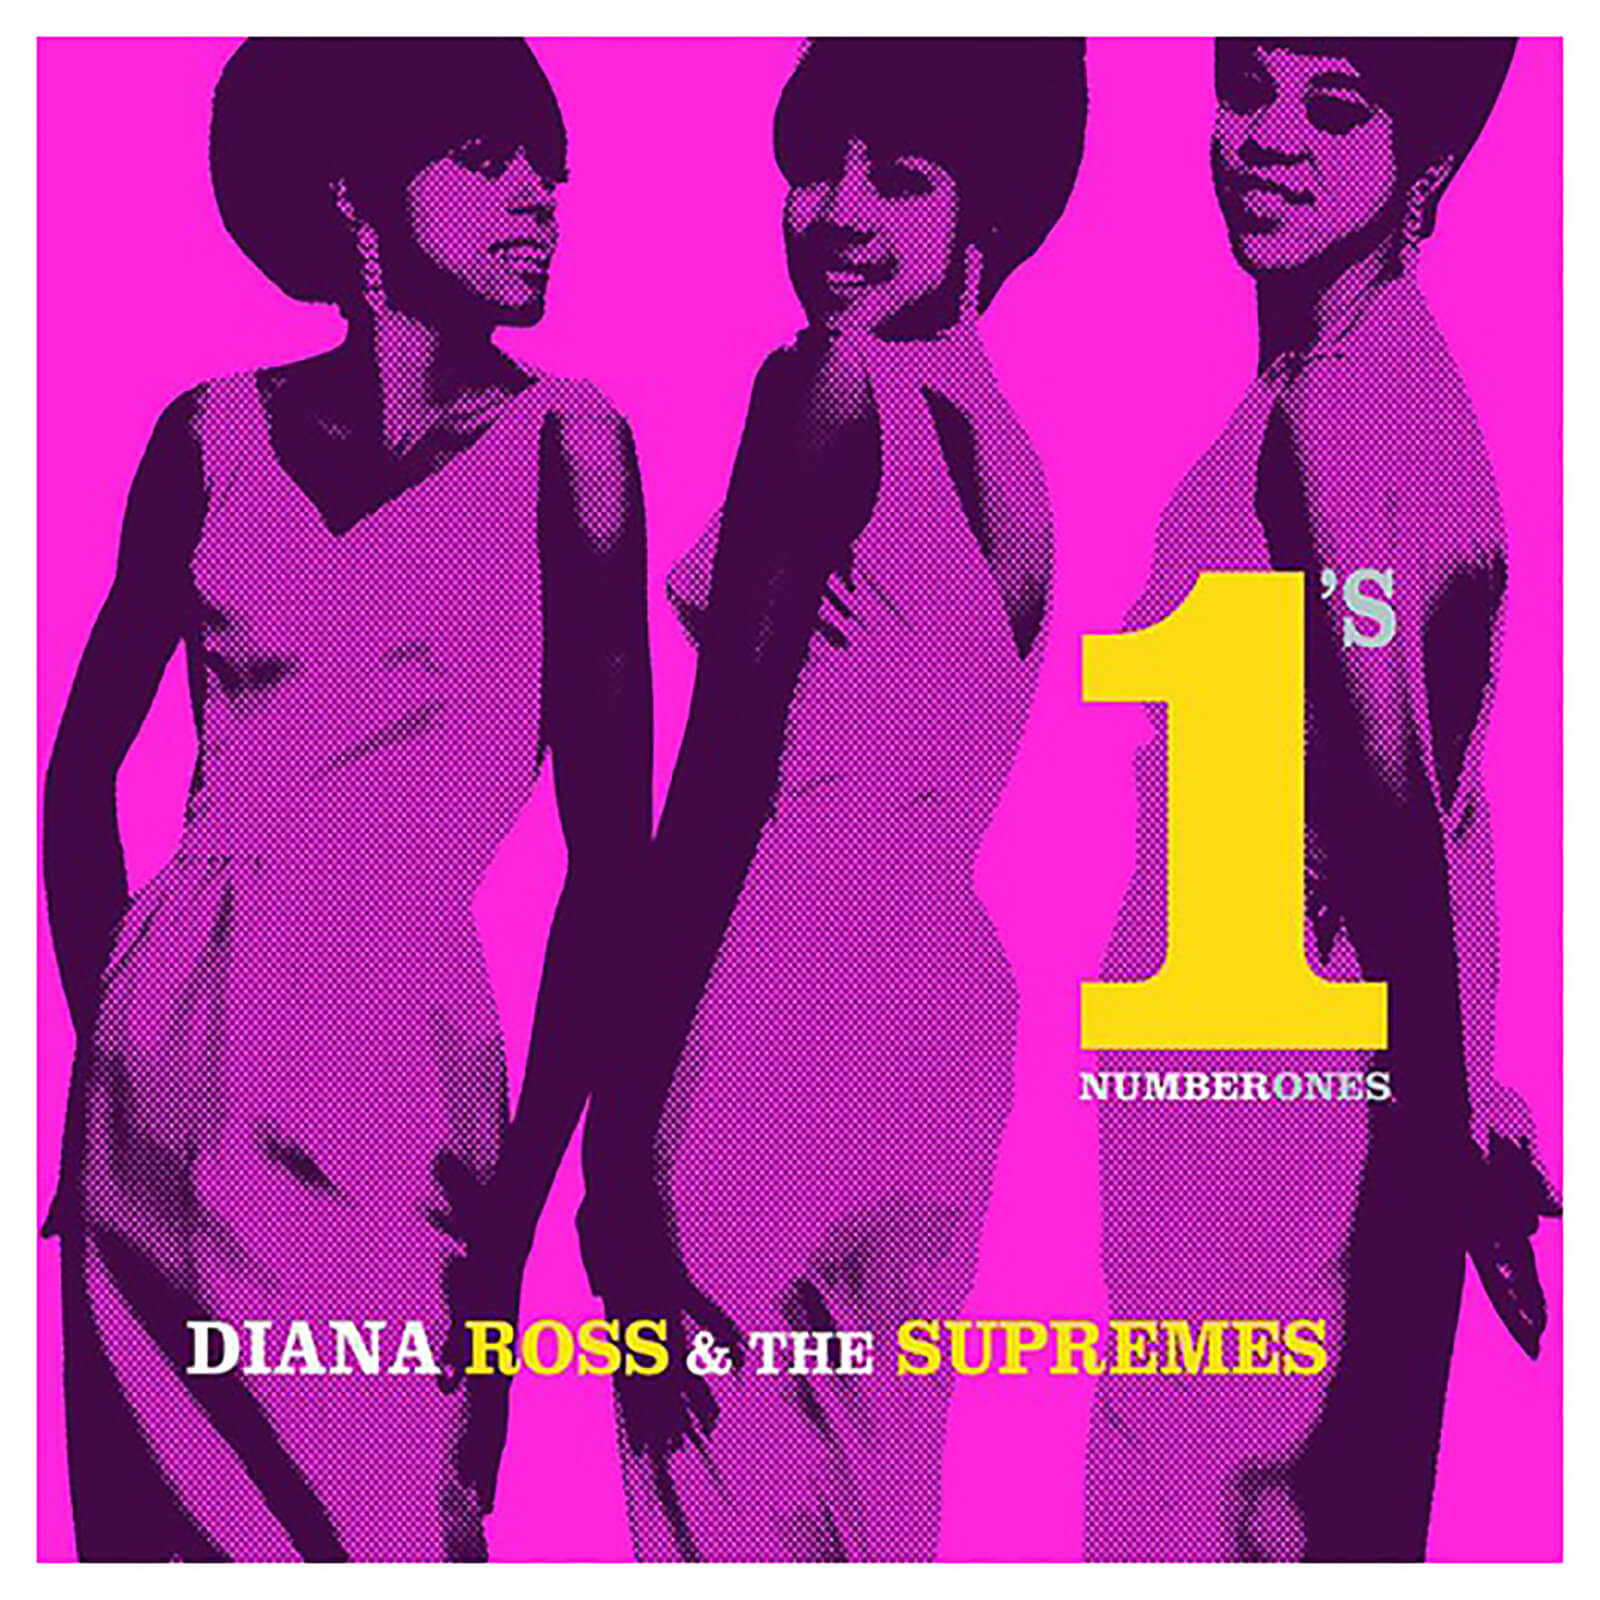 Diana Ross & The Supremes - Number Ones - Vinyl